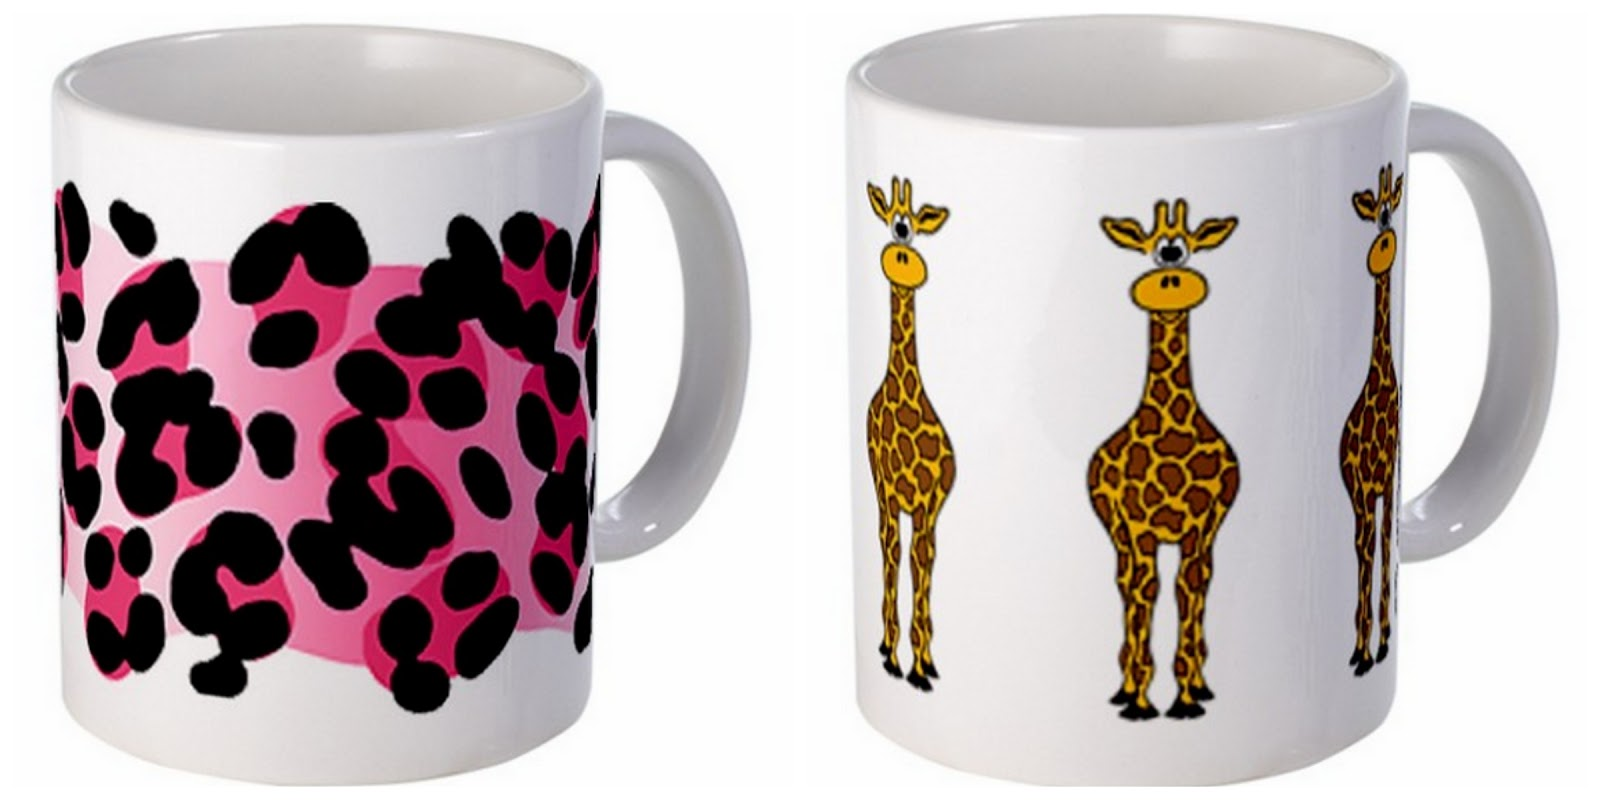 colorful fun mugs